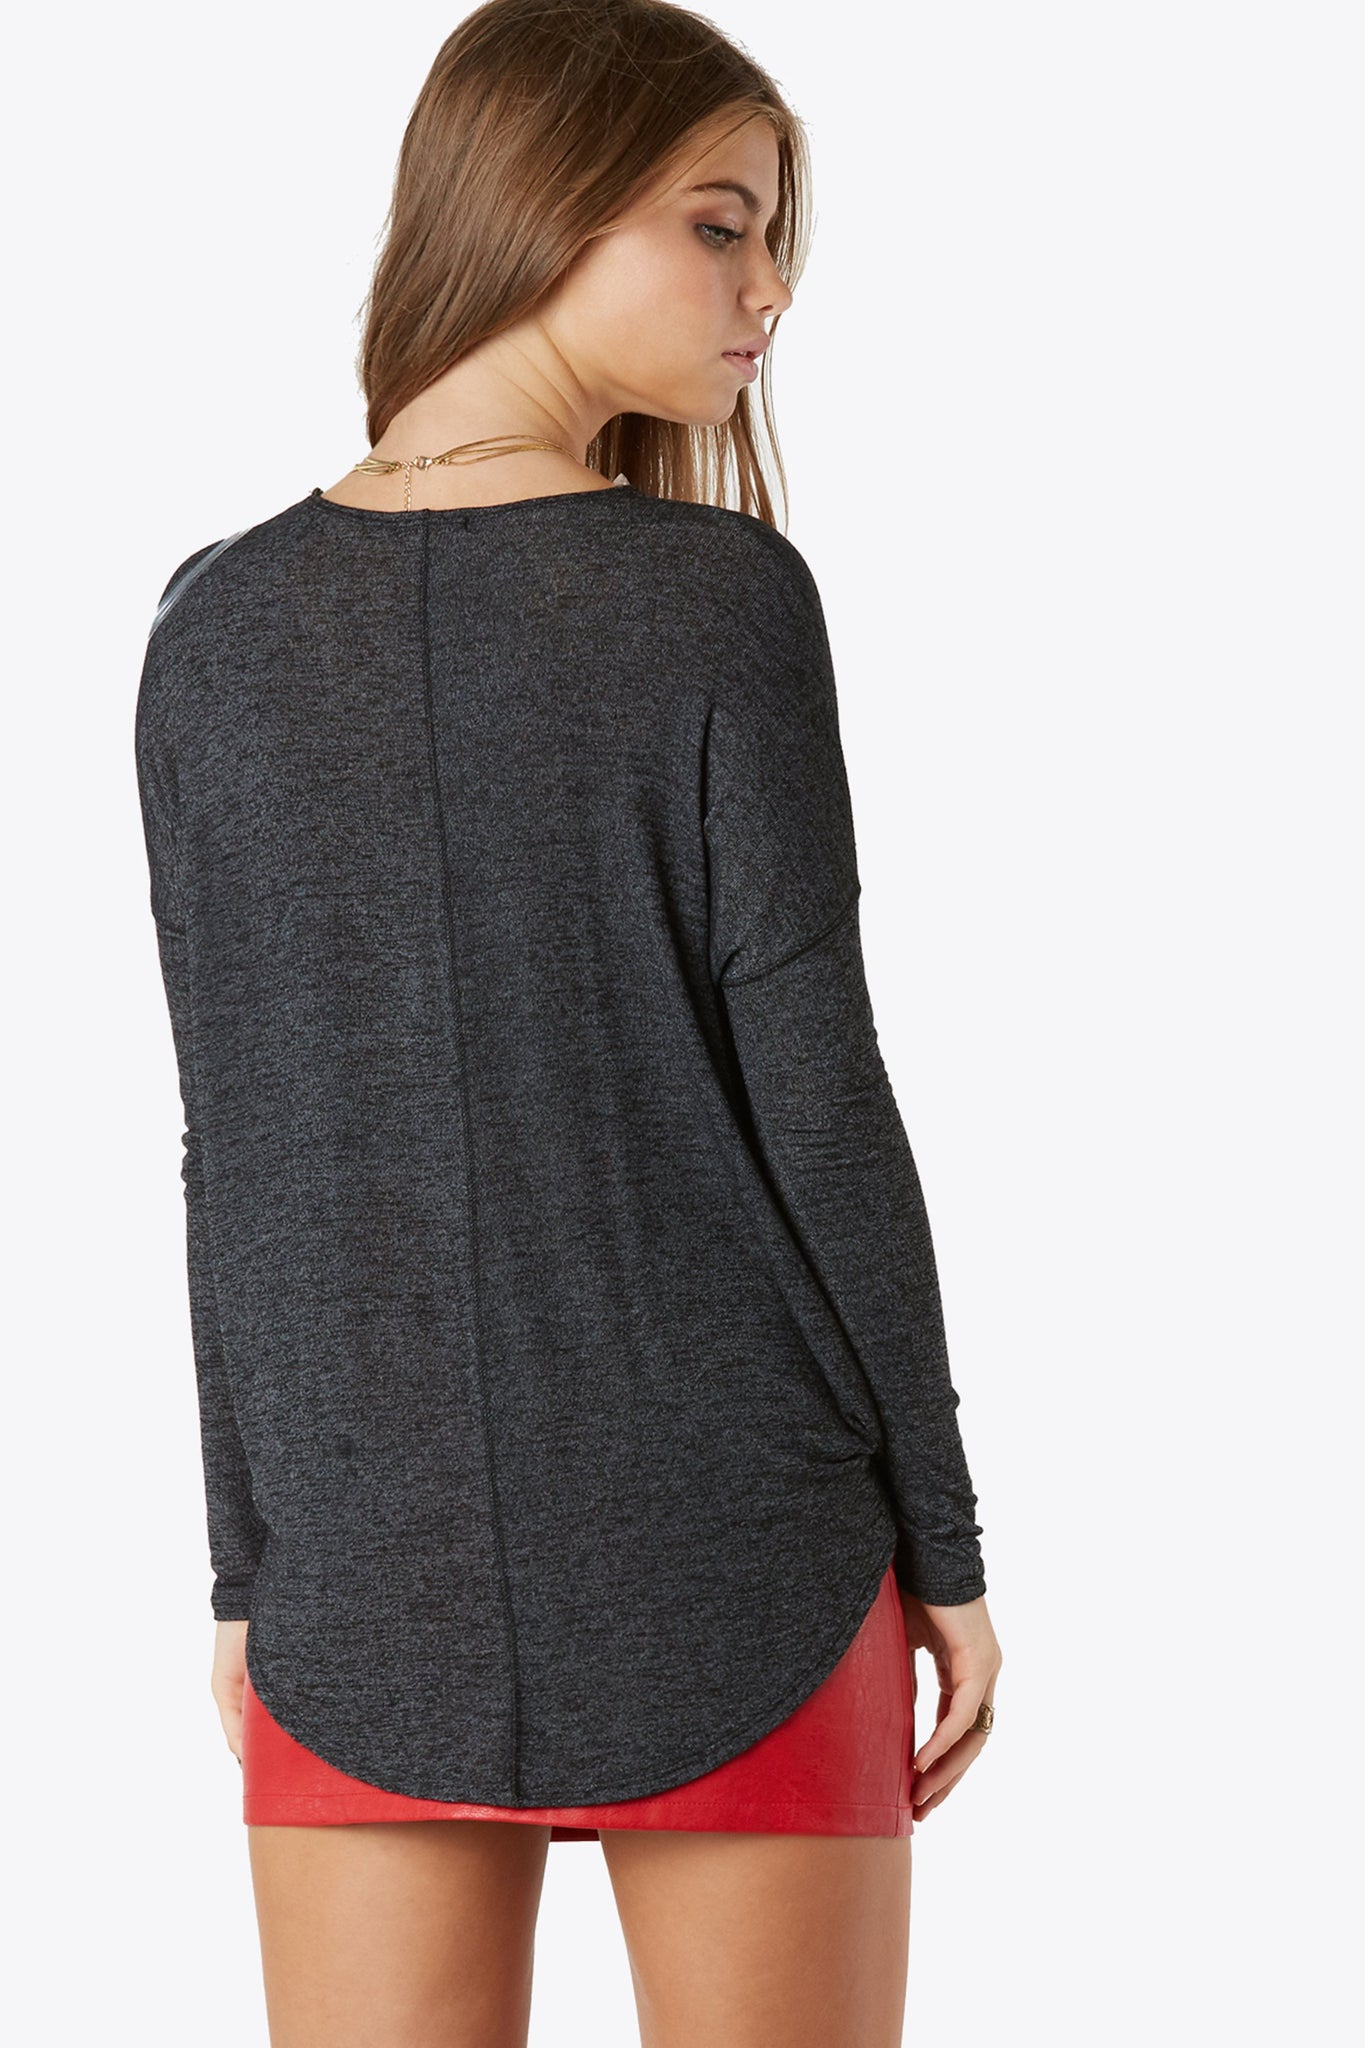 Light-weight long sleeve v-neck. Features a cross front detail for tiered effect.